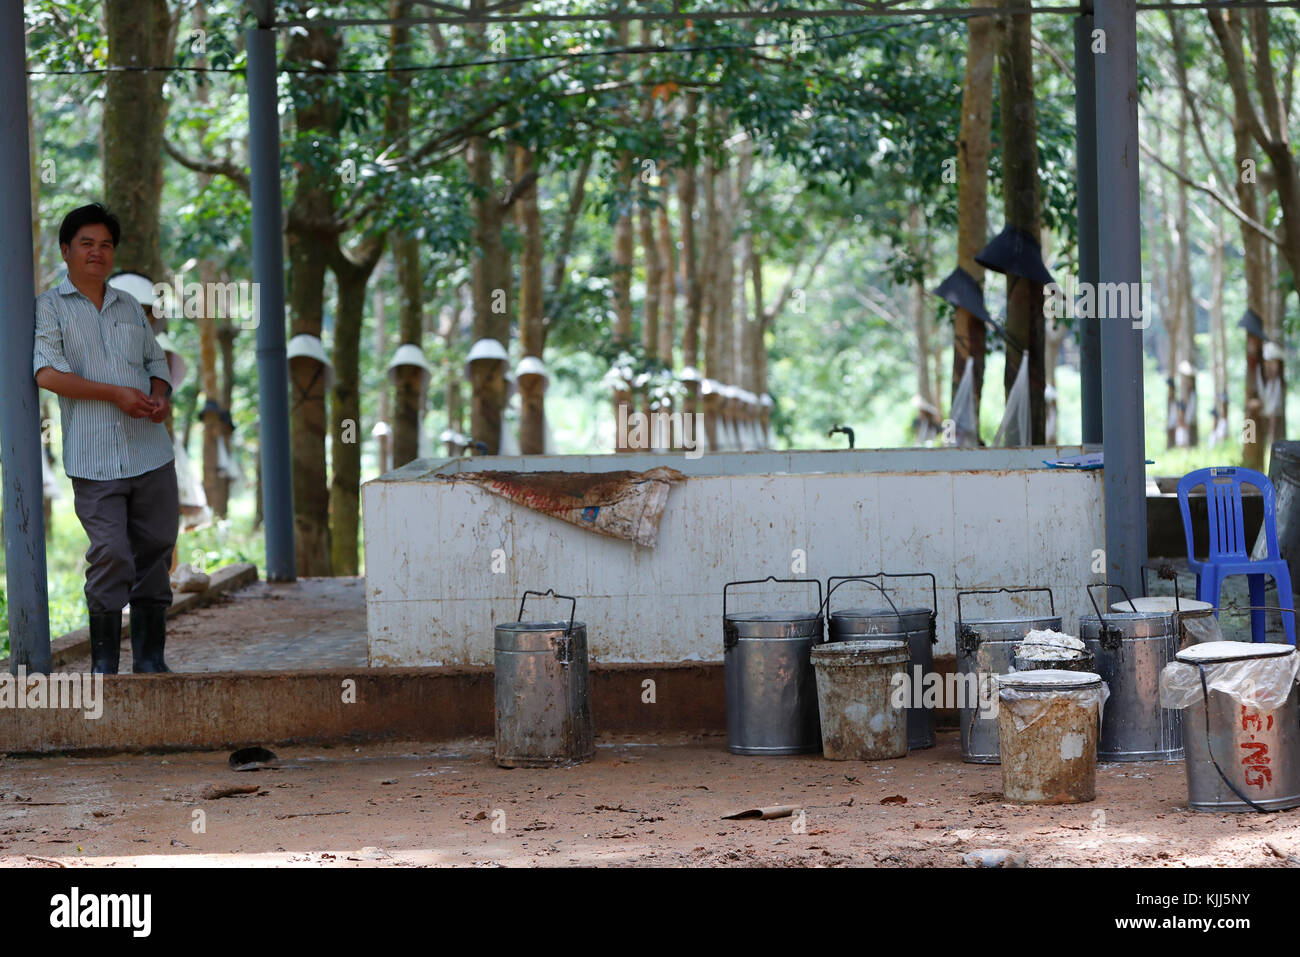 Rubber tree plantation, Rubber Tree Latex Collection And Rubber Production.  Kon Tum. Vietnam. - Stock Image